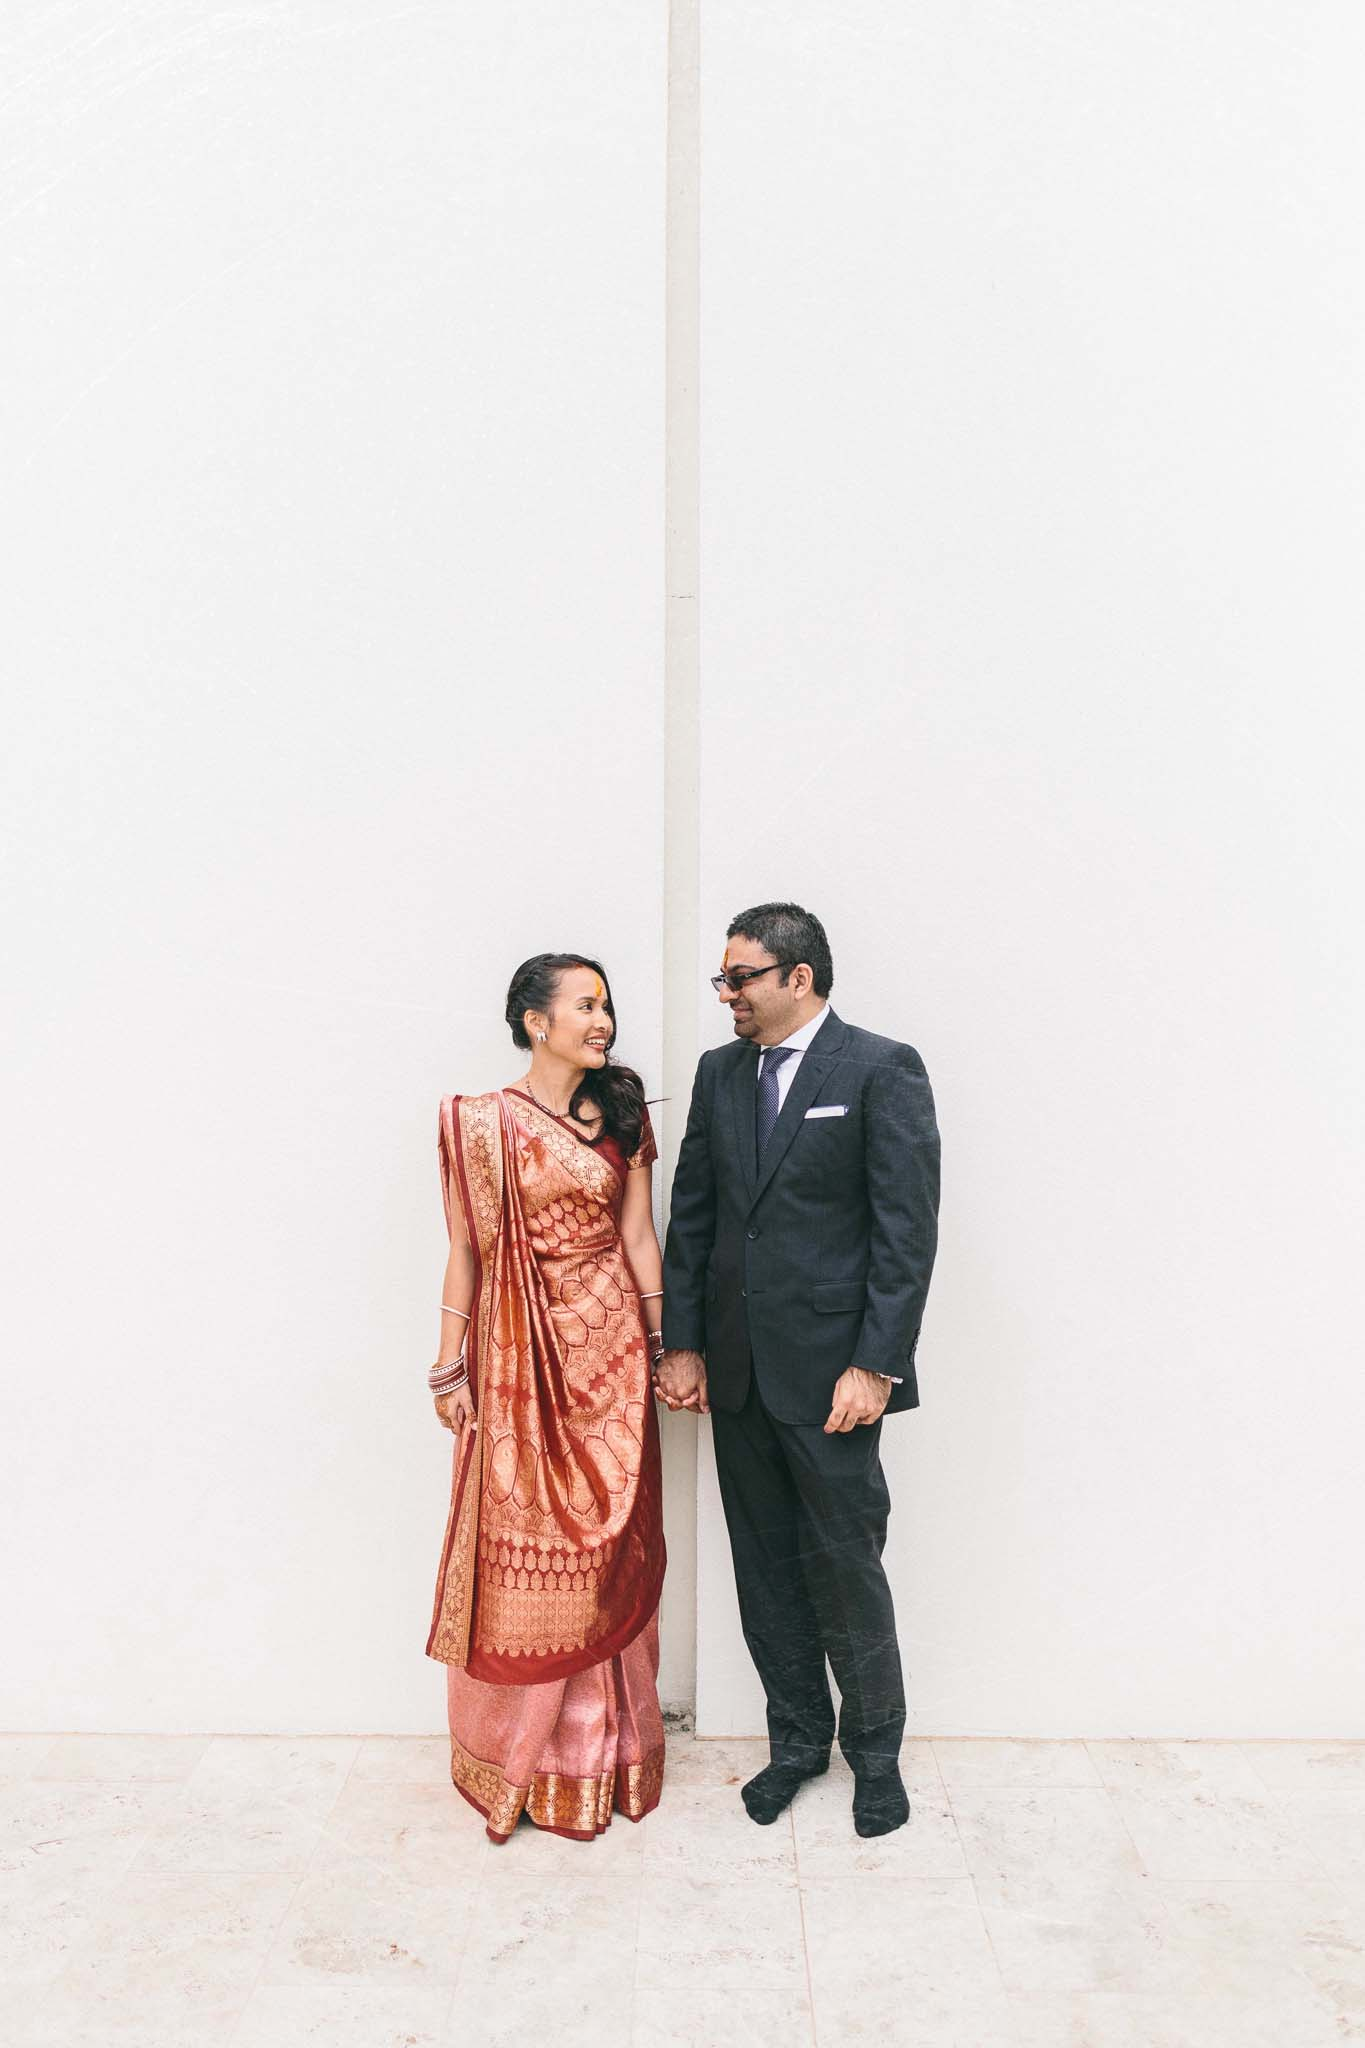 Indian Wedding Photographer Leonda by the Yarra